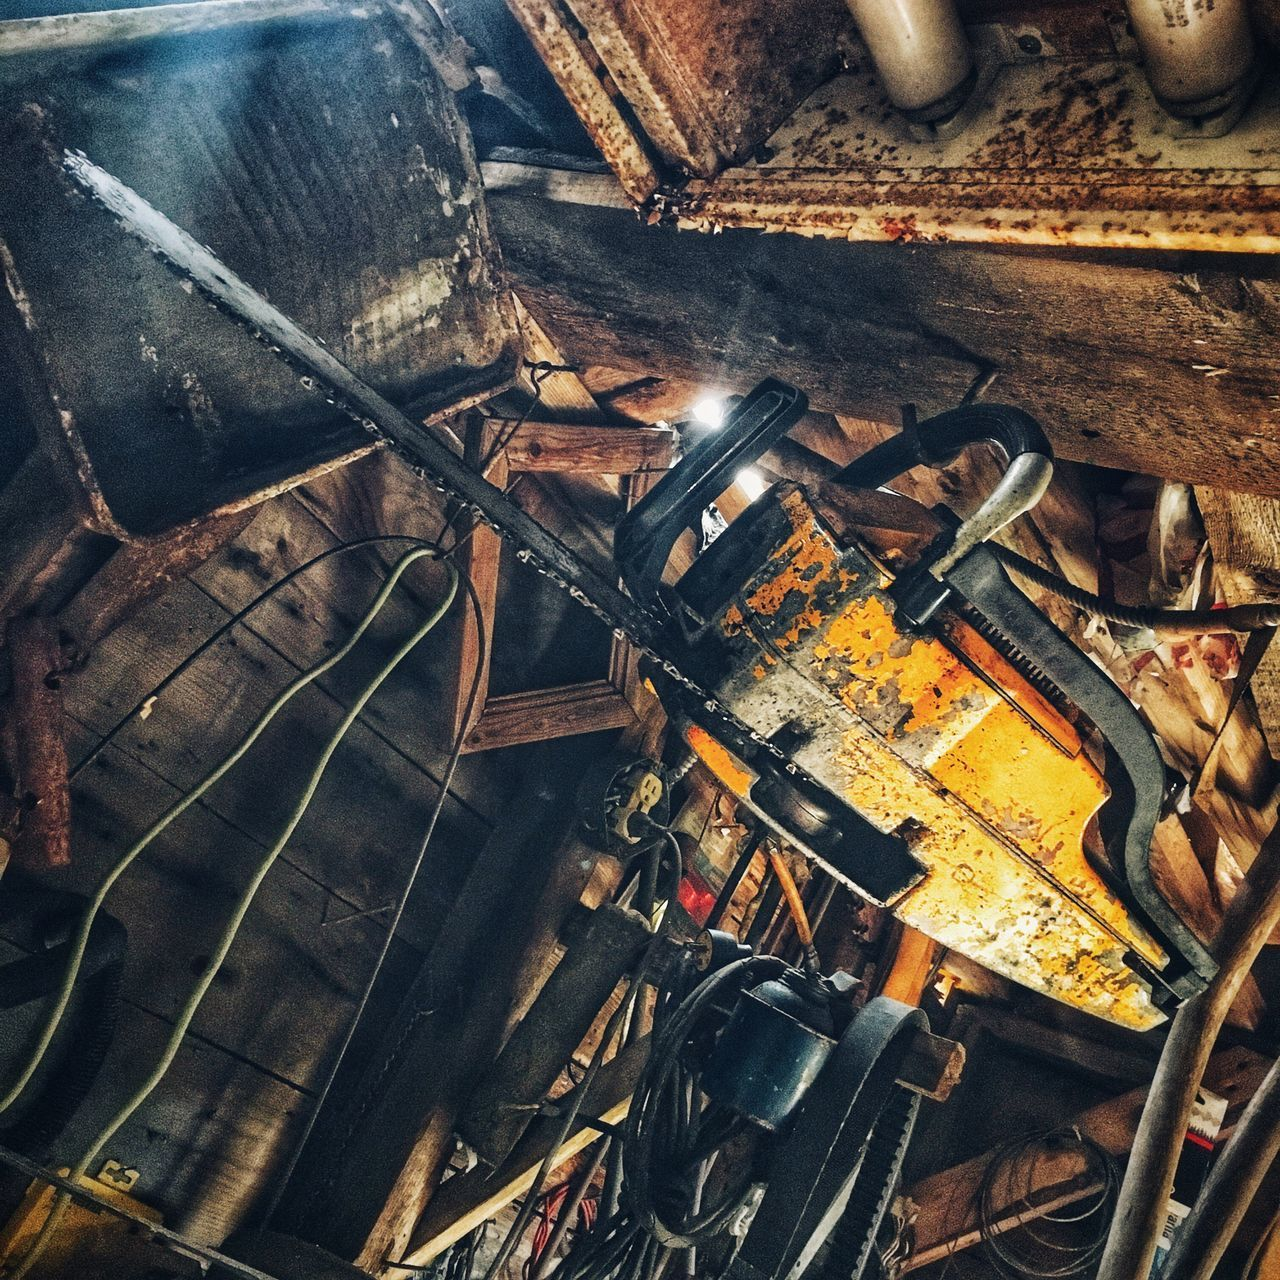 no people, abandoned, rusty, indoors, work tool, day, close-up